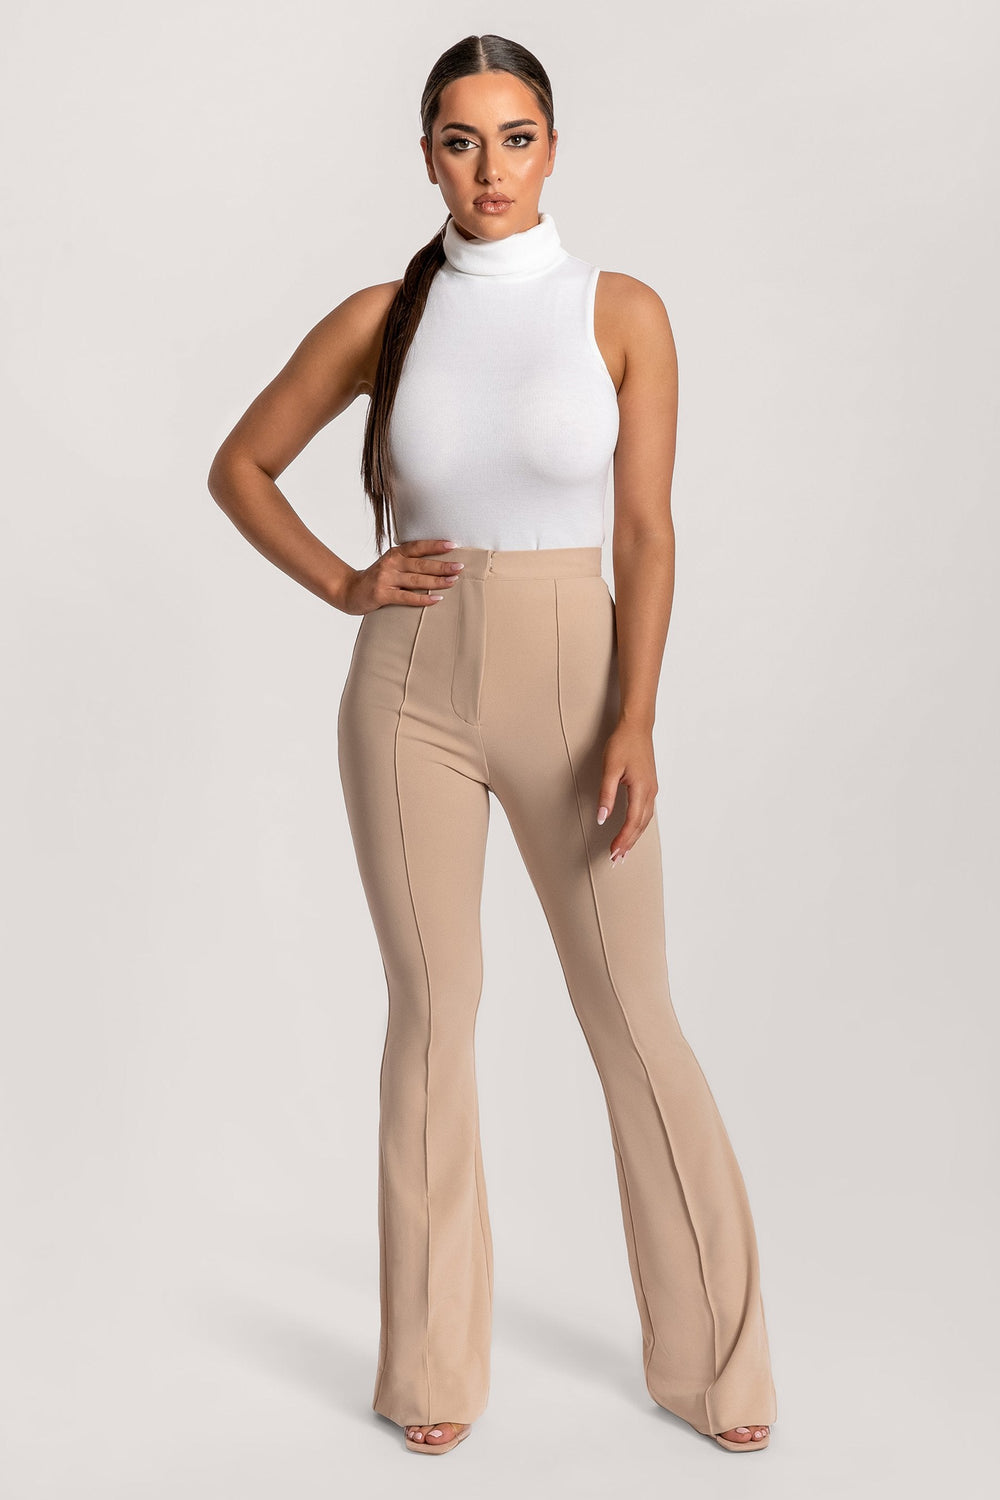 Zendaya Highwaisted Flare Pants - Nude - MESHKI ?id=16037054611531